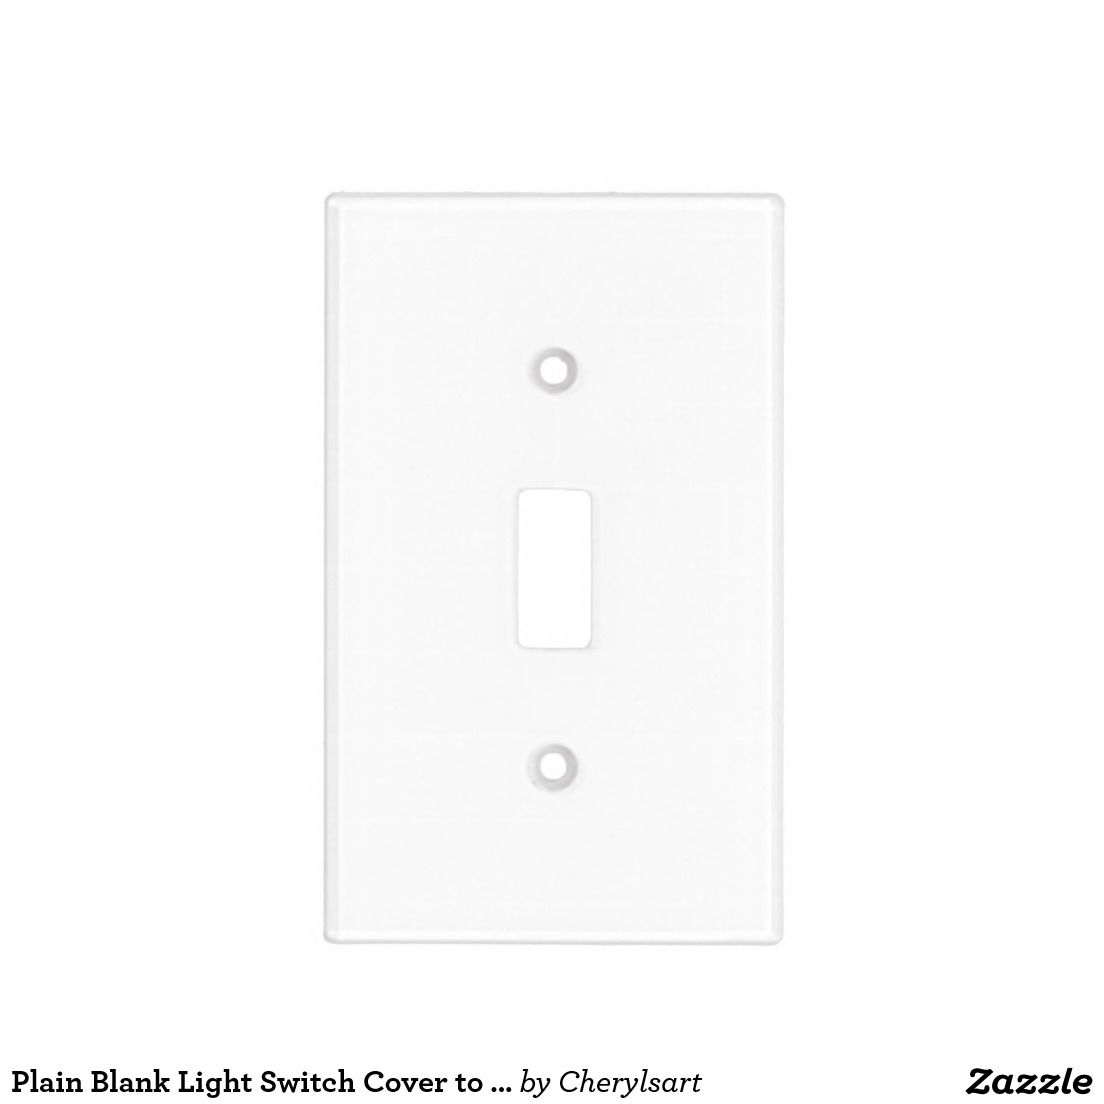 Plain Blank Light Switch Cover to DIY   Switch covers and Light switches